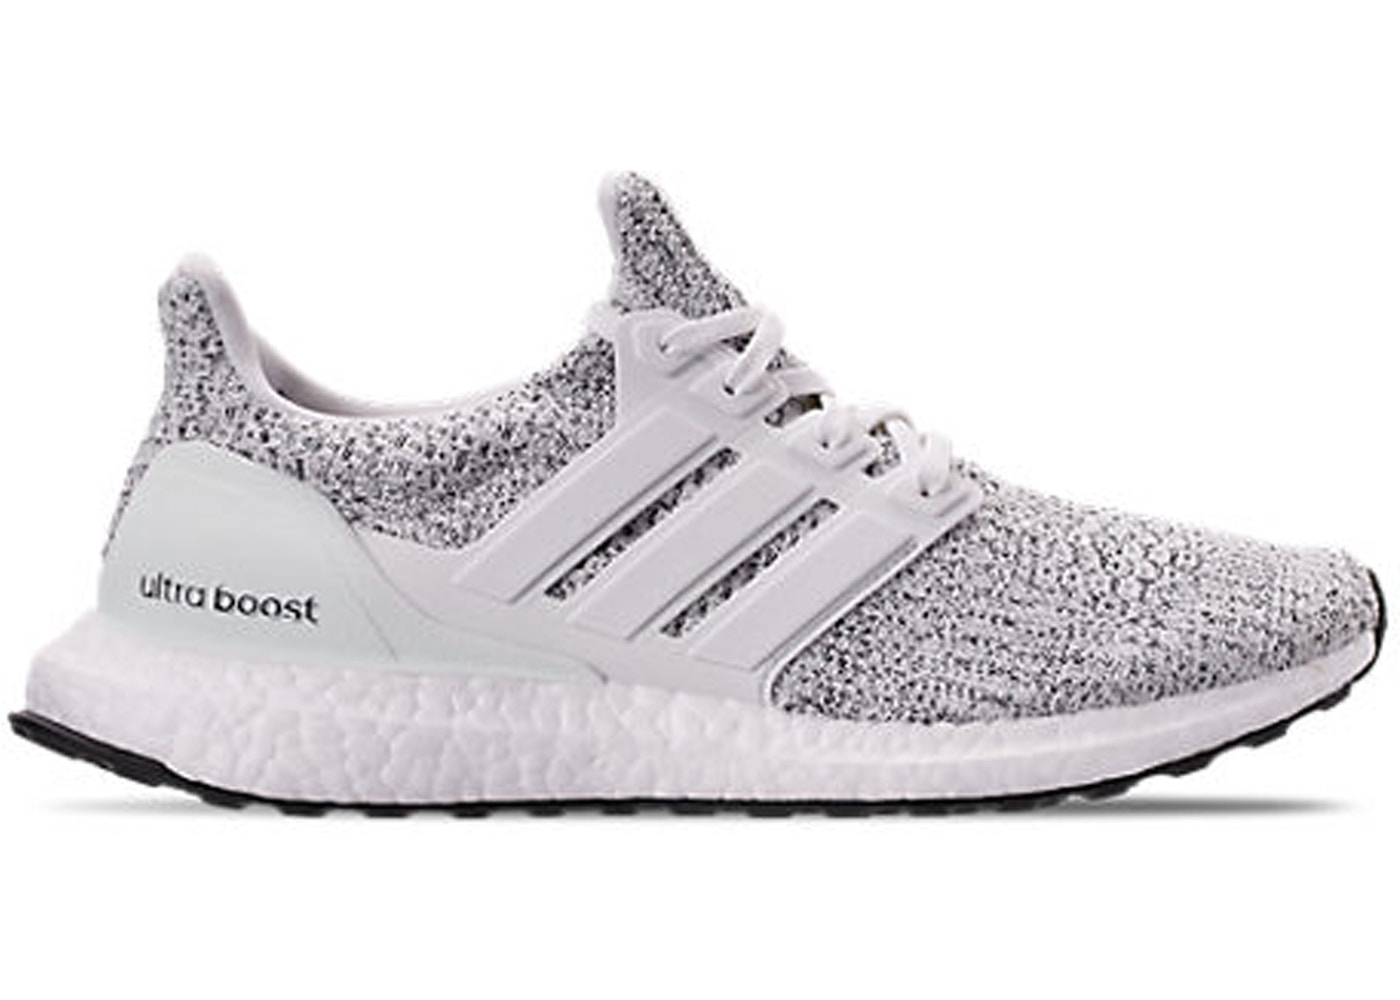 adidas ultra boost in cloud white